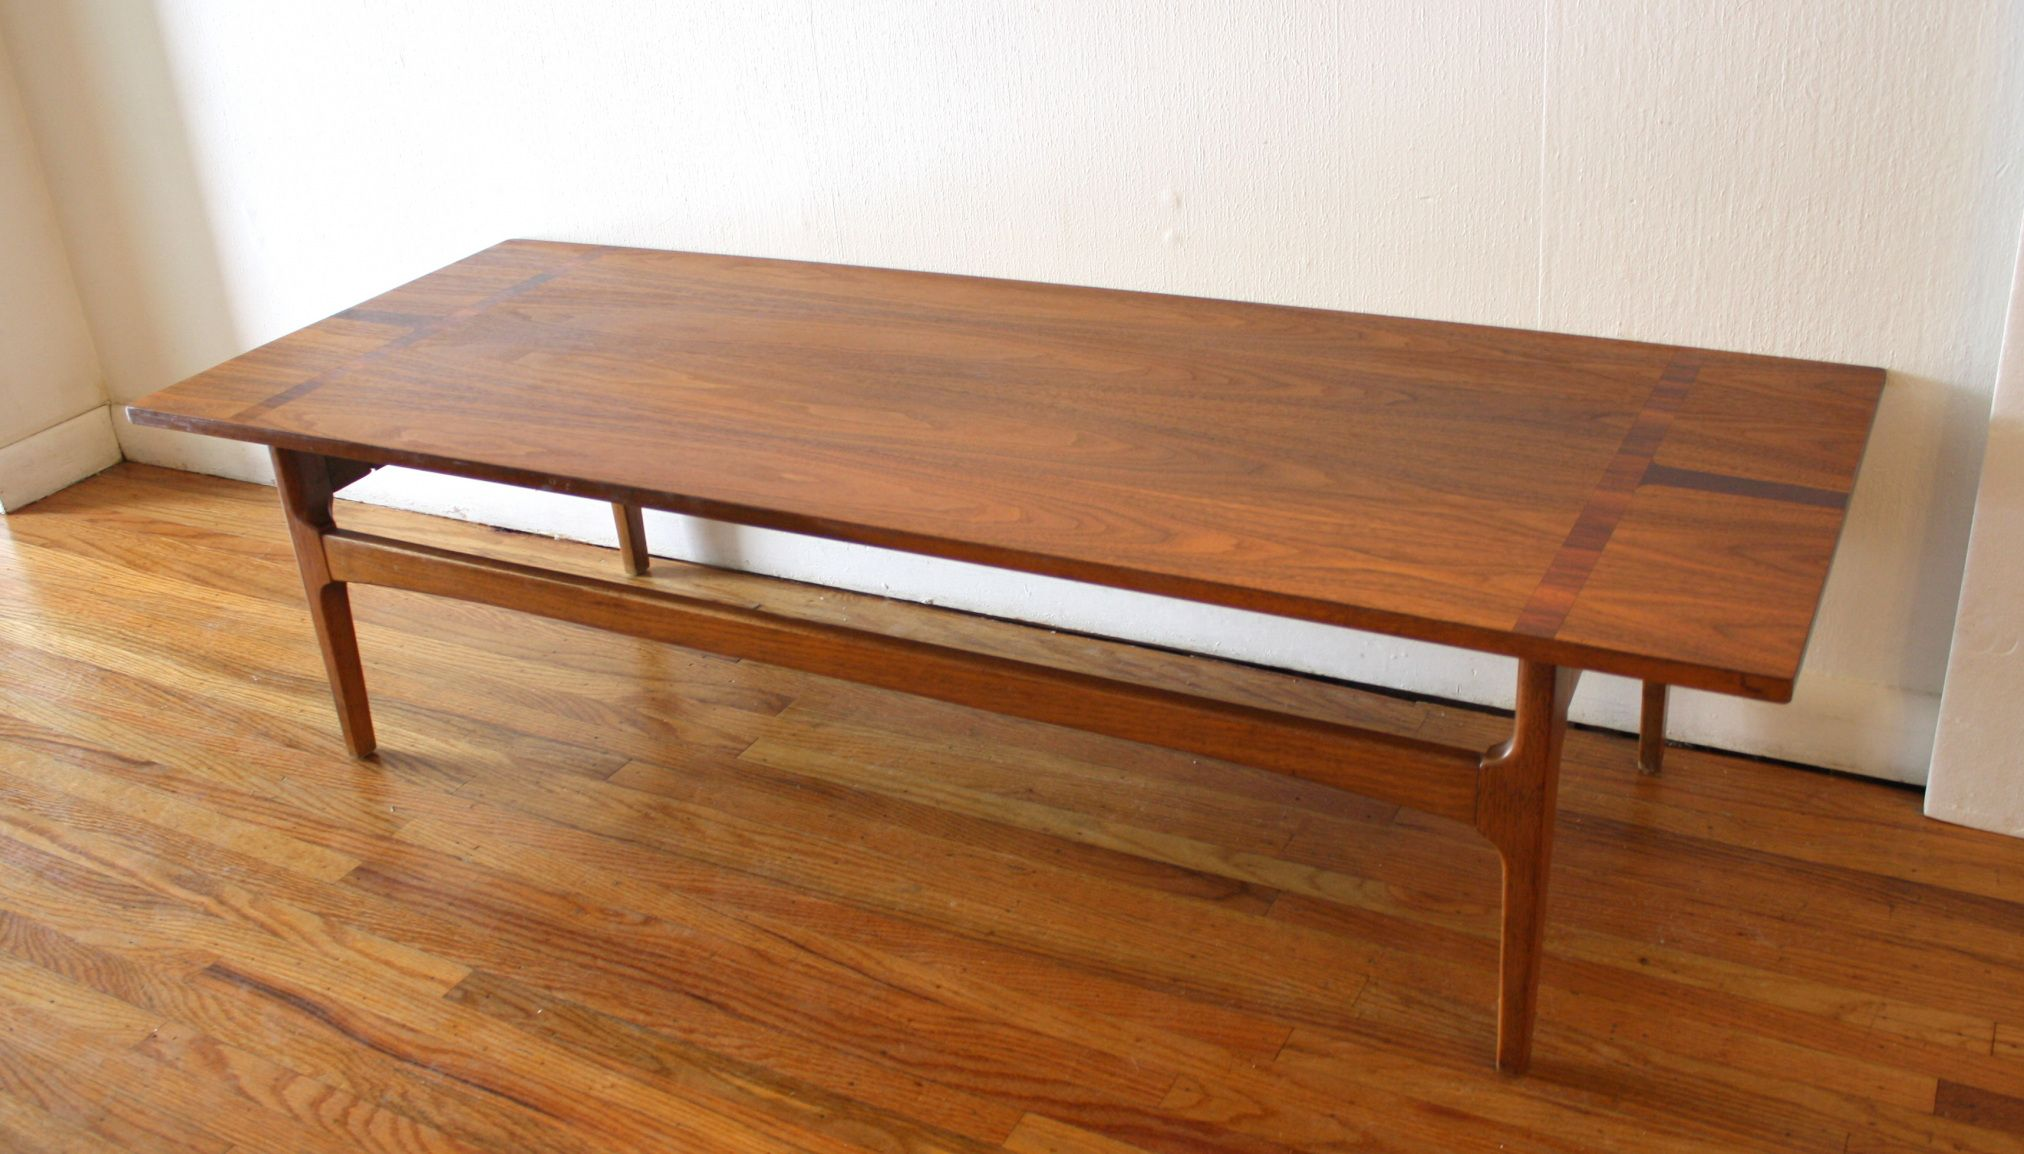 20 Mcm Coffee Table Home Office Desk Furniture Check More At Http